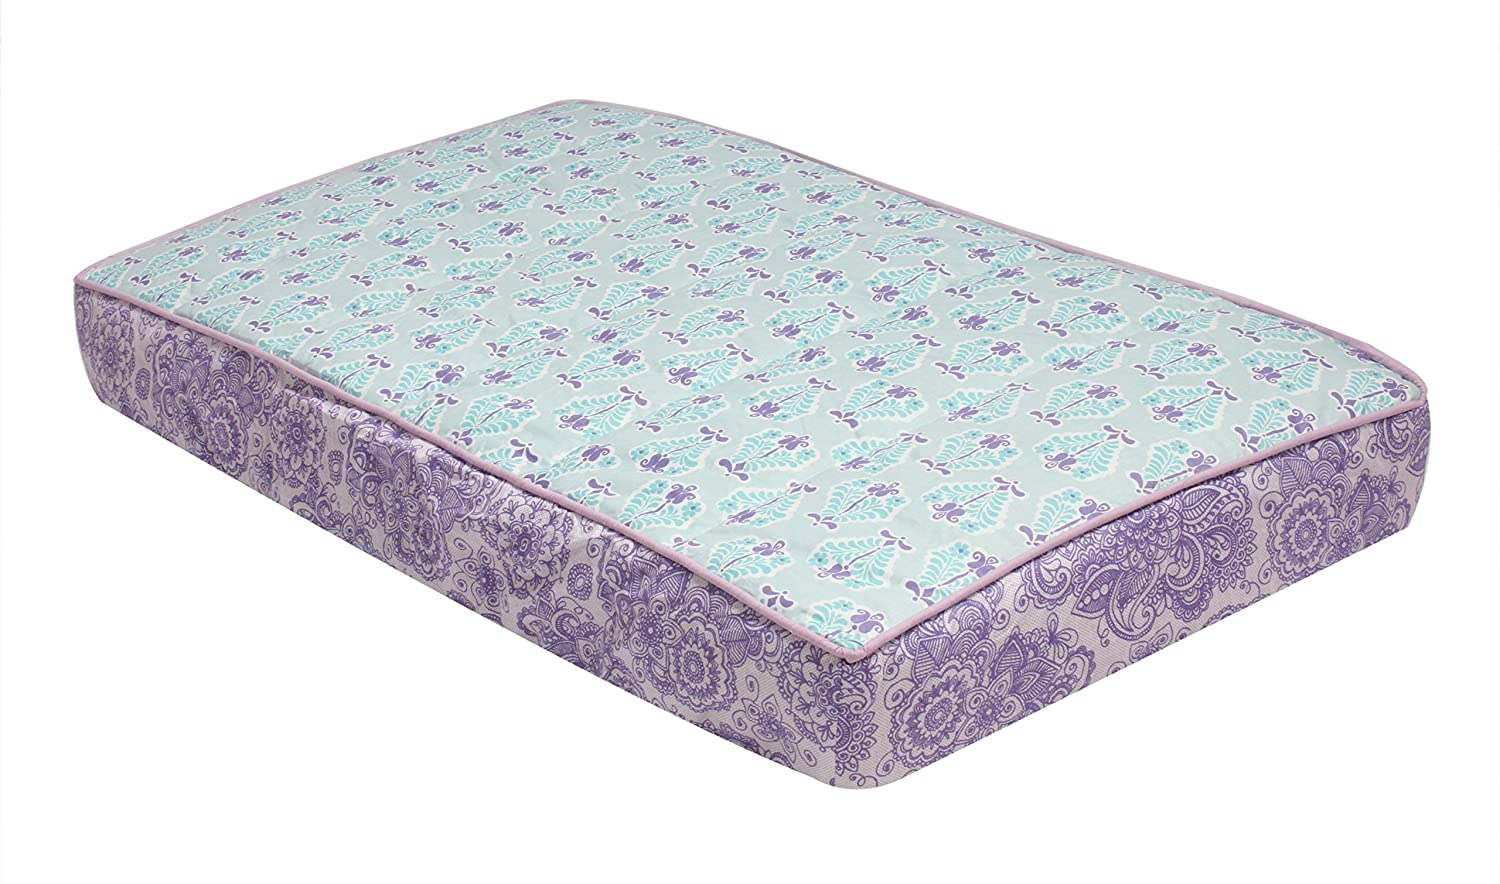 Bacati - Paisley Floral Quilted Changing Pad Cover (Lilac/Purple/Aqua Floret)